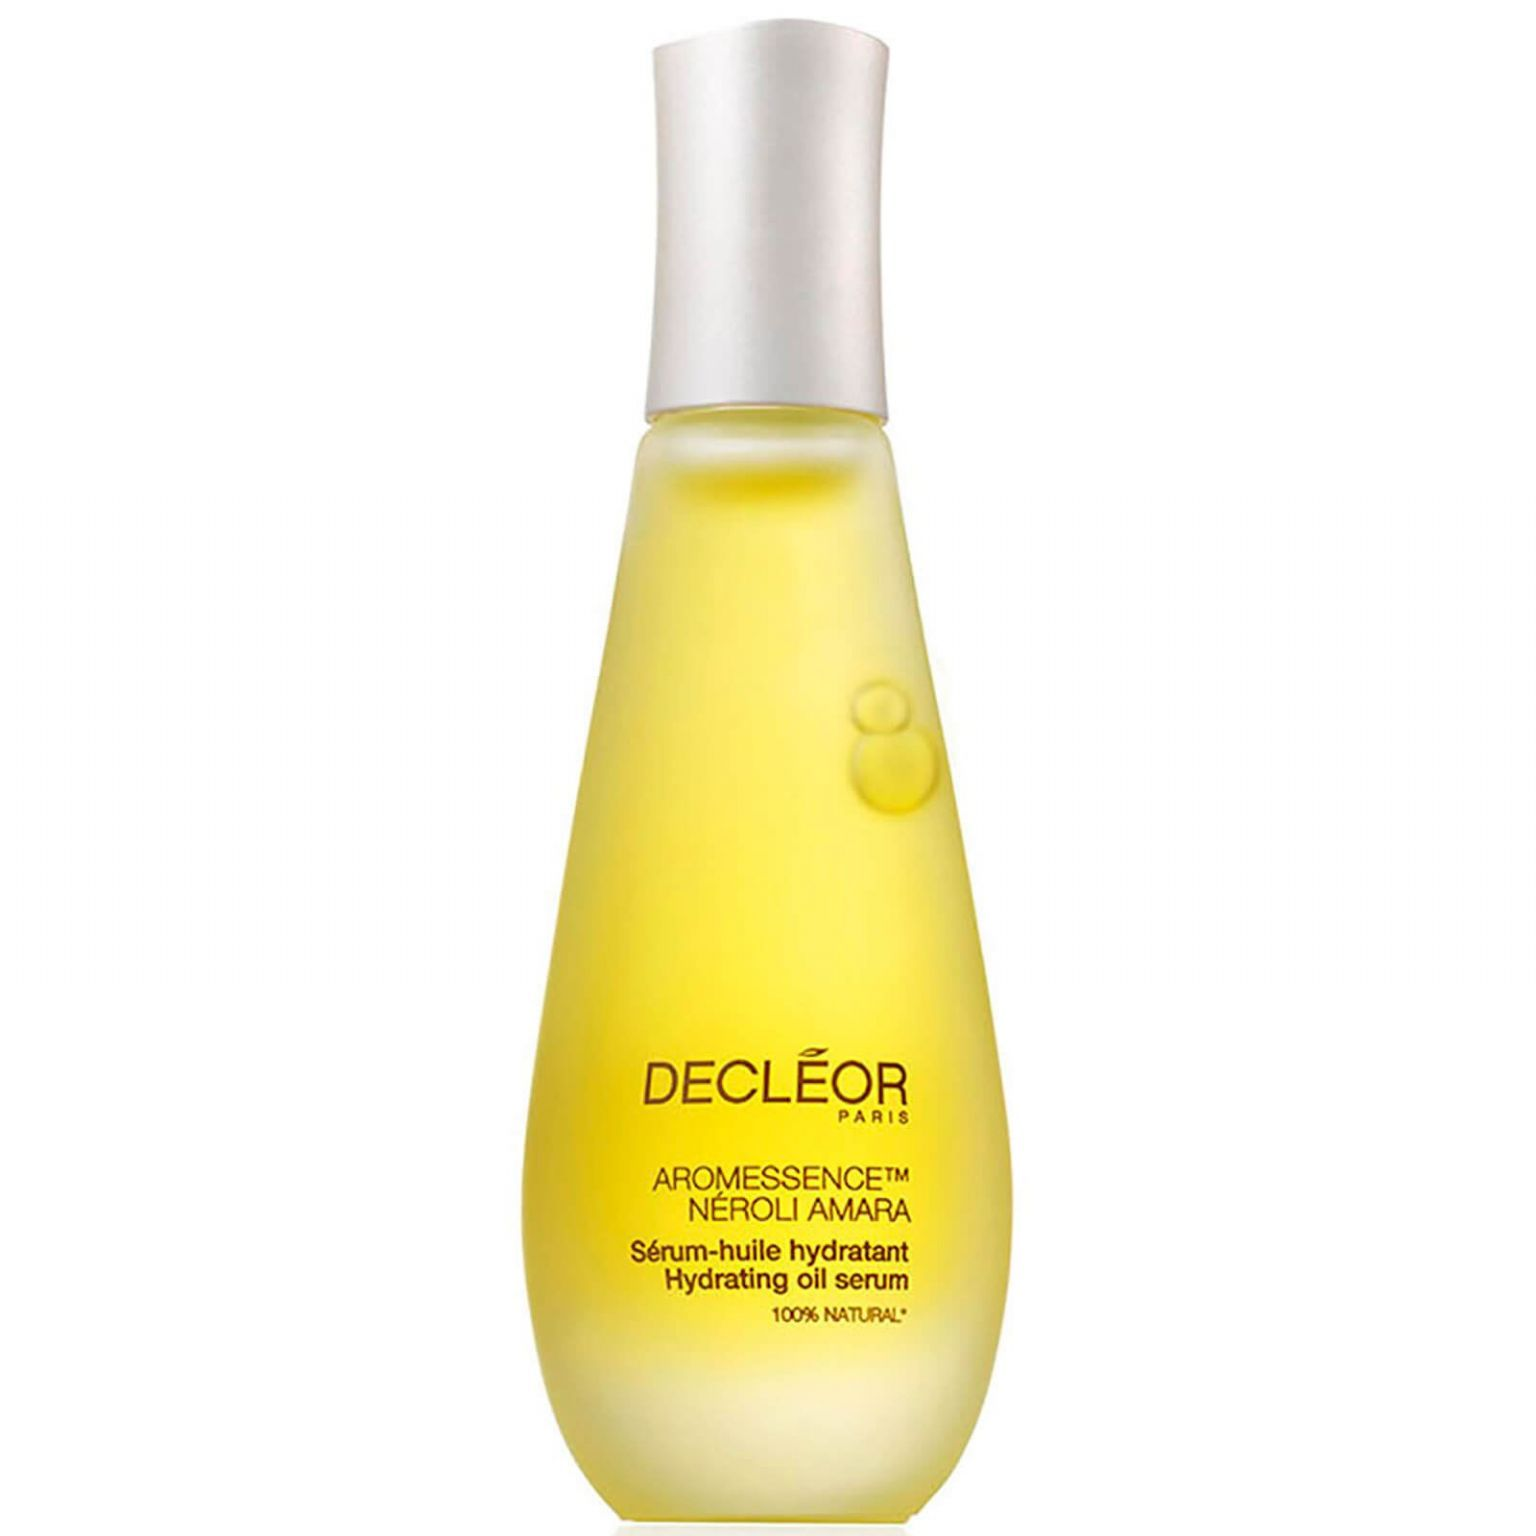 Aromessence Neroli Hydrating Oil Serum